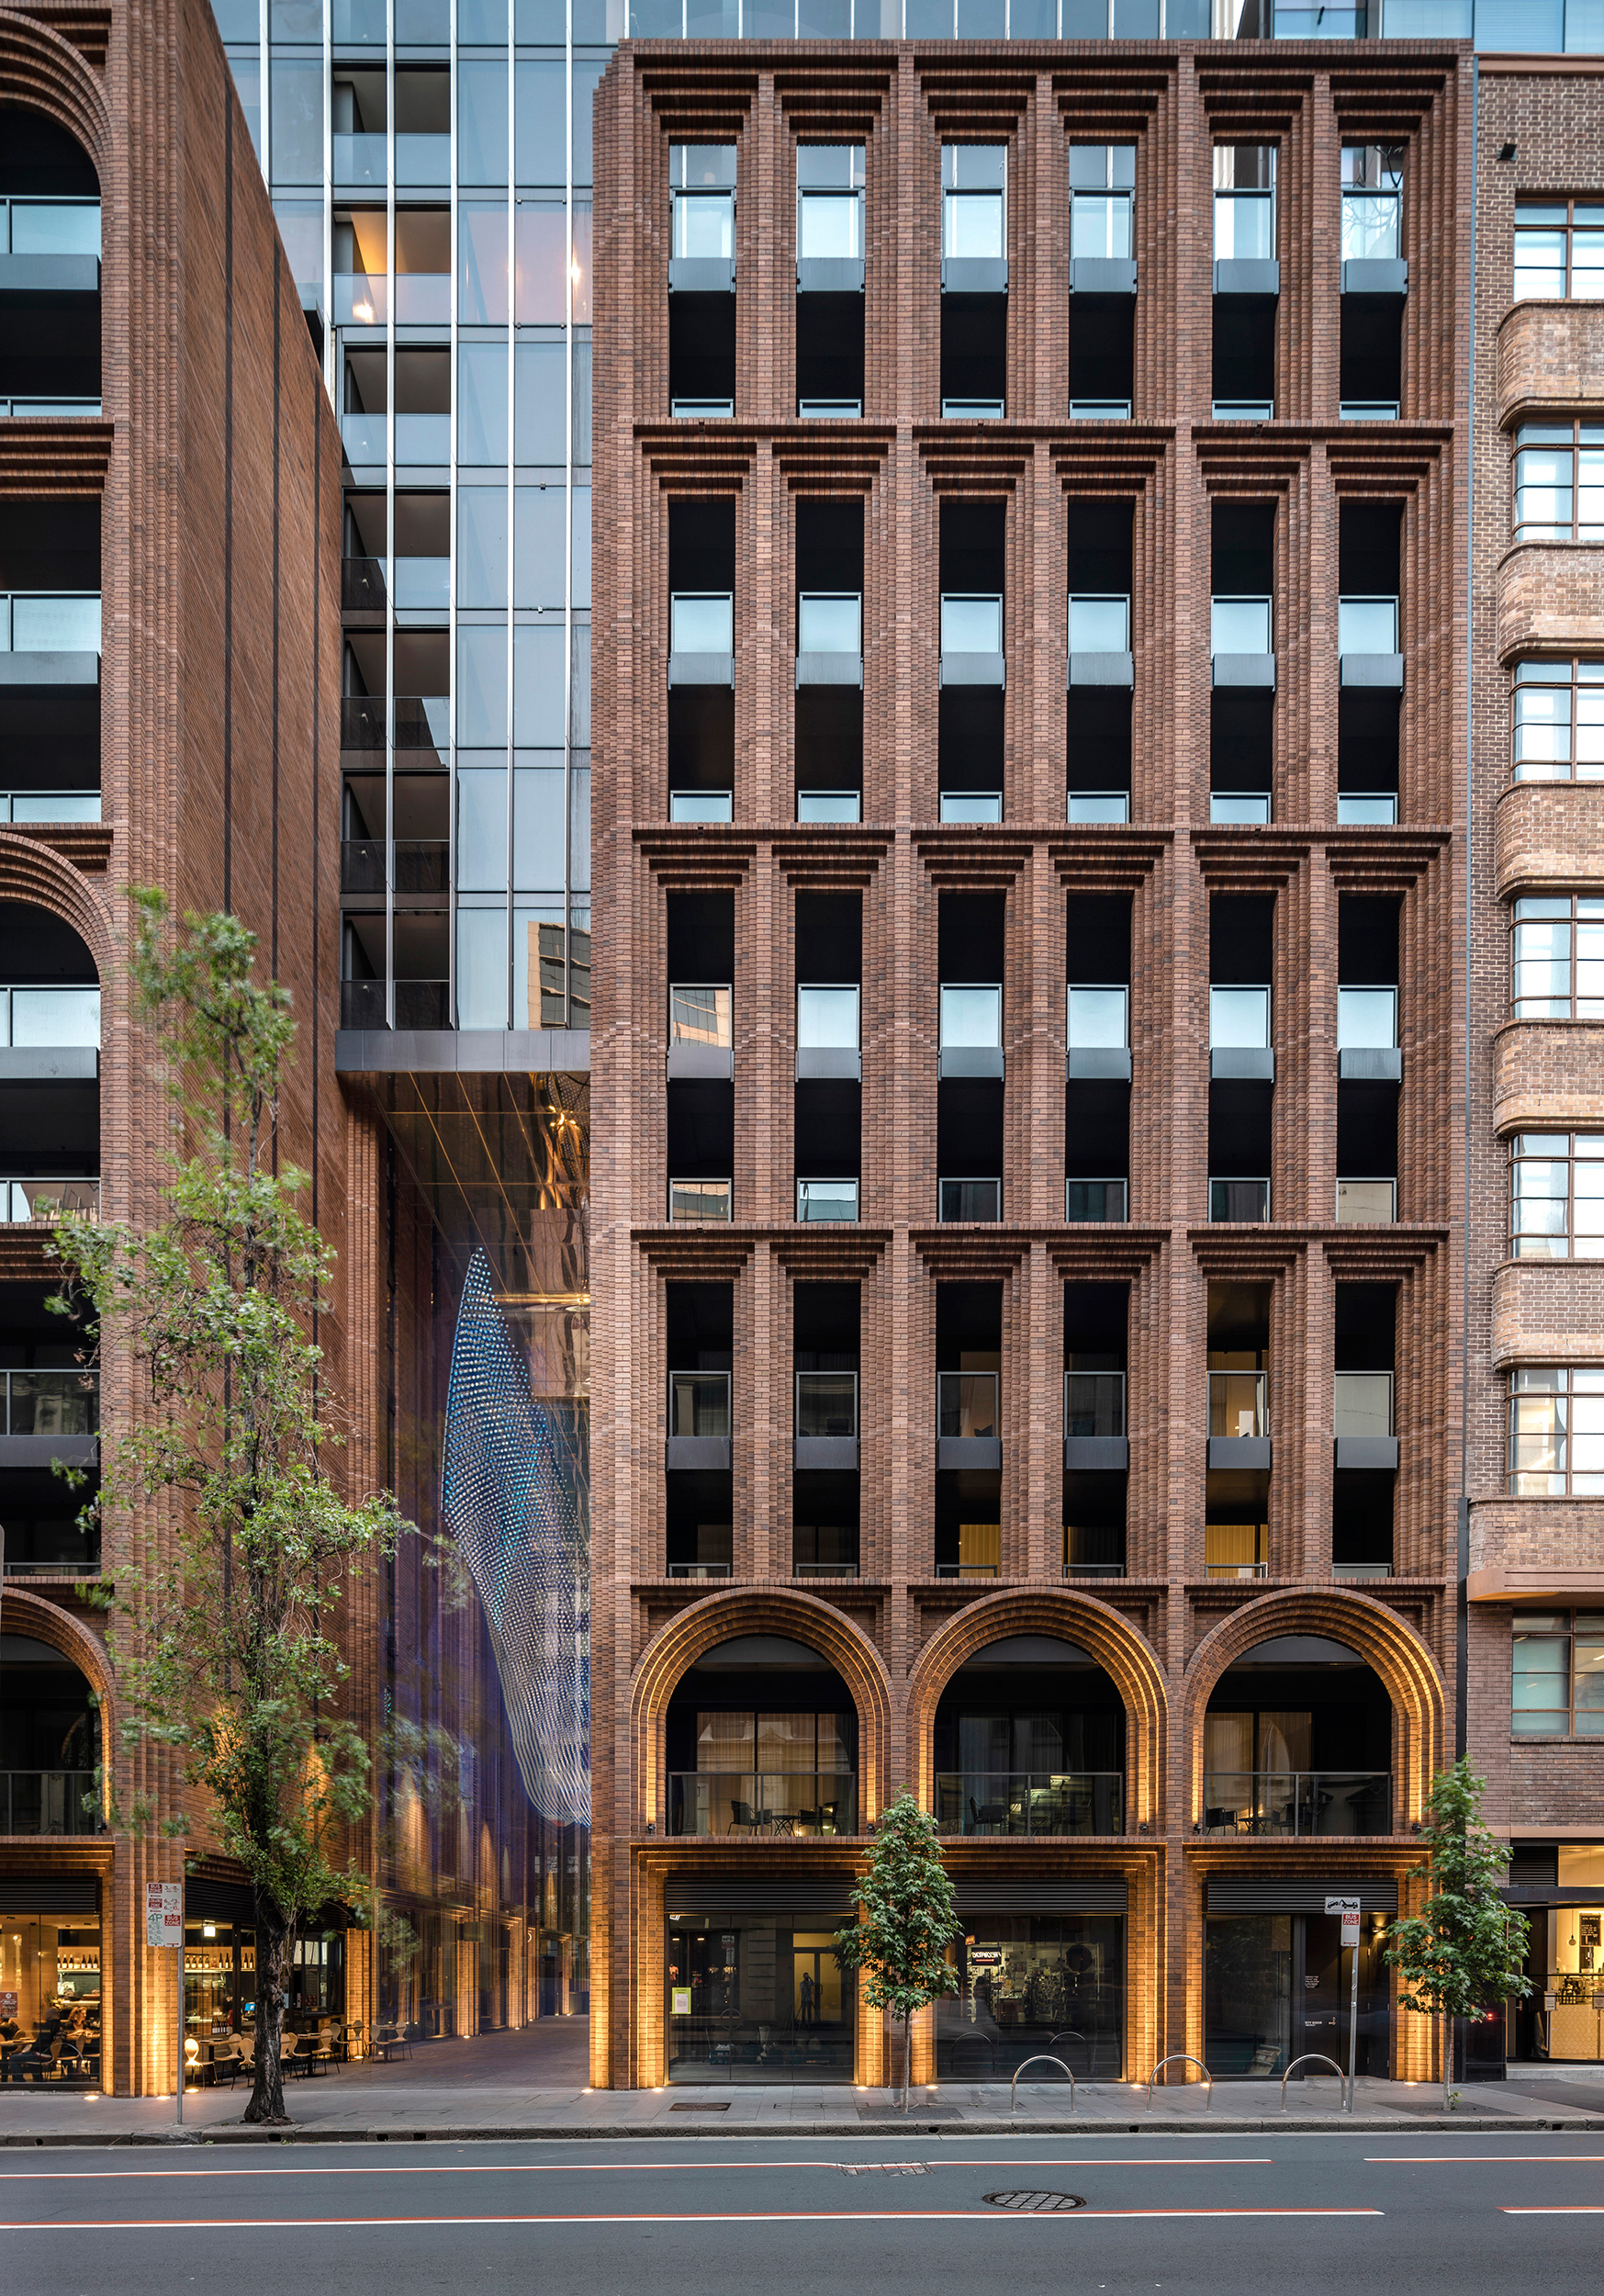 Clarence Street view of Arc | Arc |Koichi Takada Architects | Sydney | STIRworld